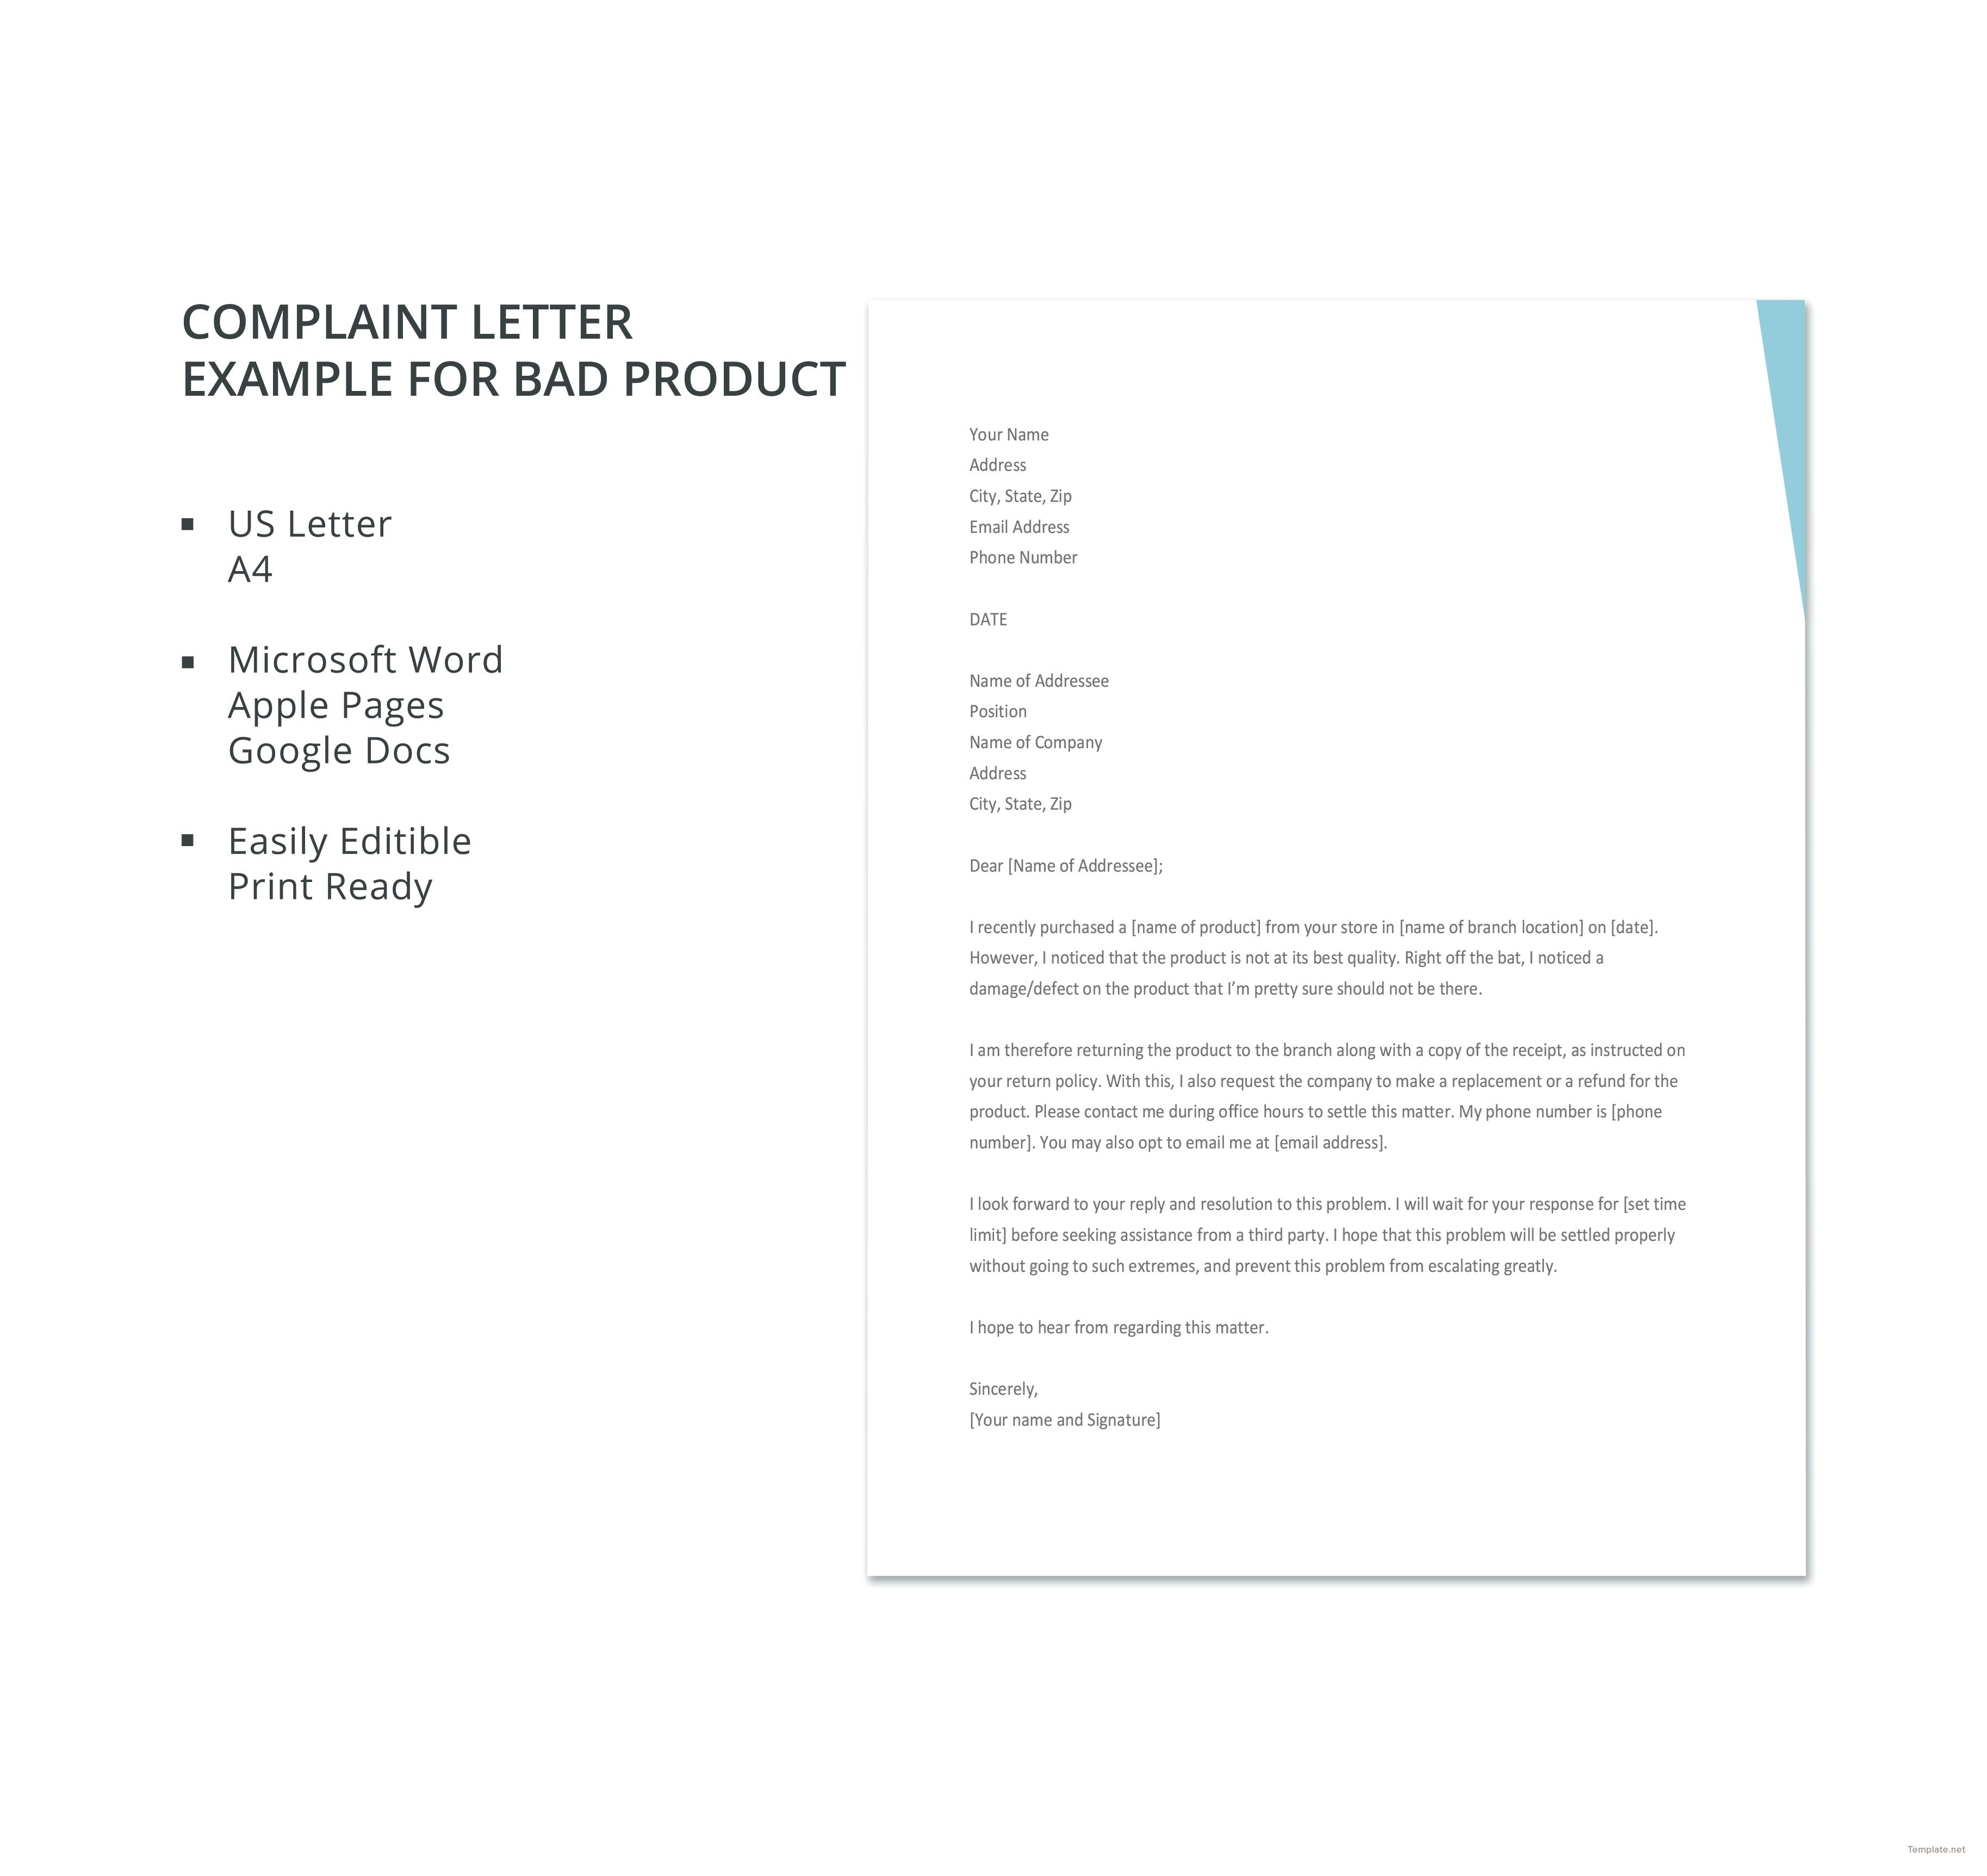 Complaint Letter Example For Bad Product Template Free Pdf Google Docs Word Letter Example Lettering Words